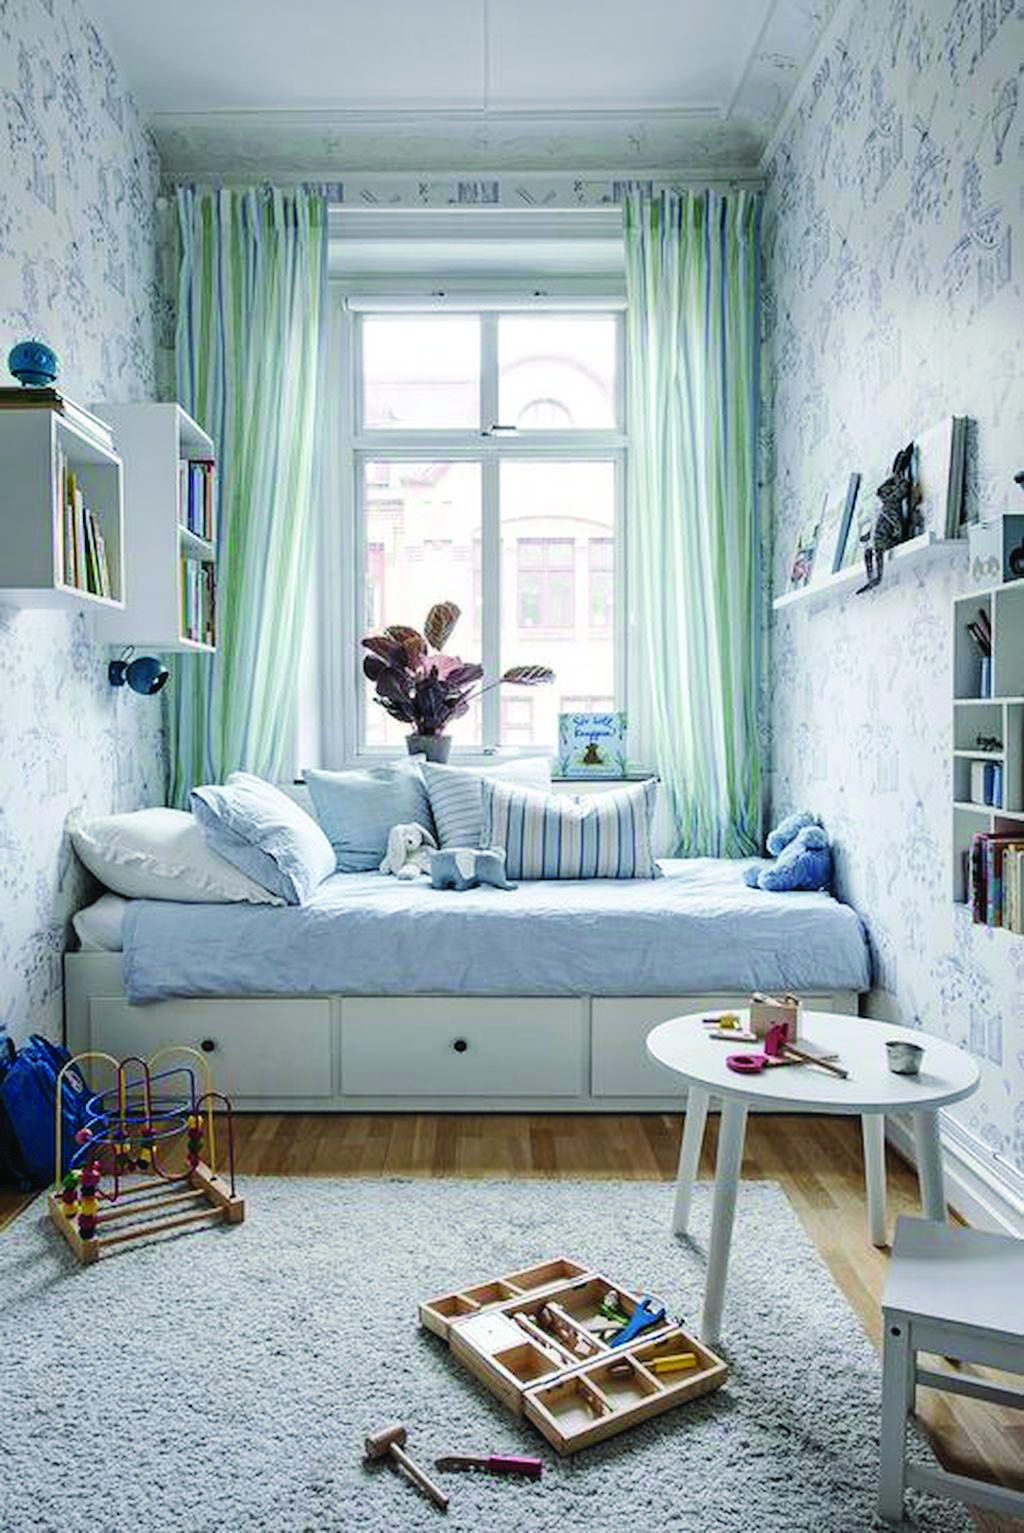 Extremely Fantastic Room Storage Room Hacks And Also Solutions Dova Home Small Room Design Apartment Bedroom Design Small Apartment Bedrooms